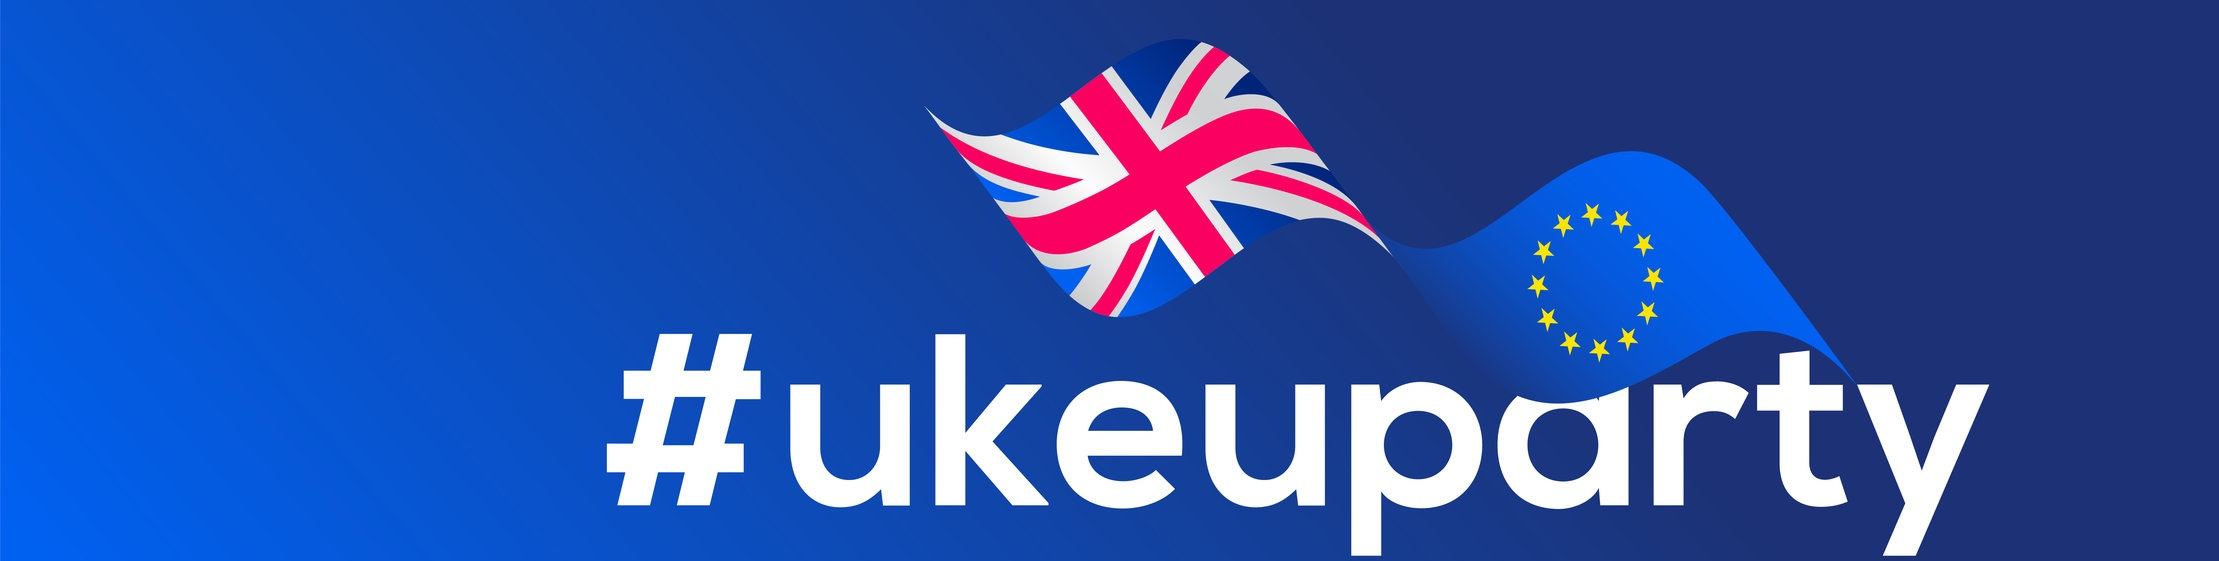 We have one policy and one purpose: to stop Brexit. - Standing for a kinder, gentler politics, we have one aim: to stop Brexit. With other mainstream parties embodying 'business as usual' or 'more of the same' - only the UK EU Party represents real change and an unequivocal commitment to remain.In the longer term, The UK EU Party's aim will be to contest any future UK General Election as the same 'one policy, one purpose' party, maintaining European Union membership as a central issue. This is the party's raison d'être, but we also stand for a broader, inclusive, centrist form of politics.As with the six million Remainers who backed the recent Petition to Revoke Article 50, and the one million people who took to the streets of London for The People's March last month, those behind UKEUP have decided to act after seeing the chaos caused by the British Government and Opposition since the EU Referendum in 2016.